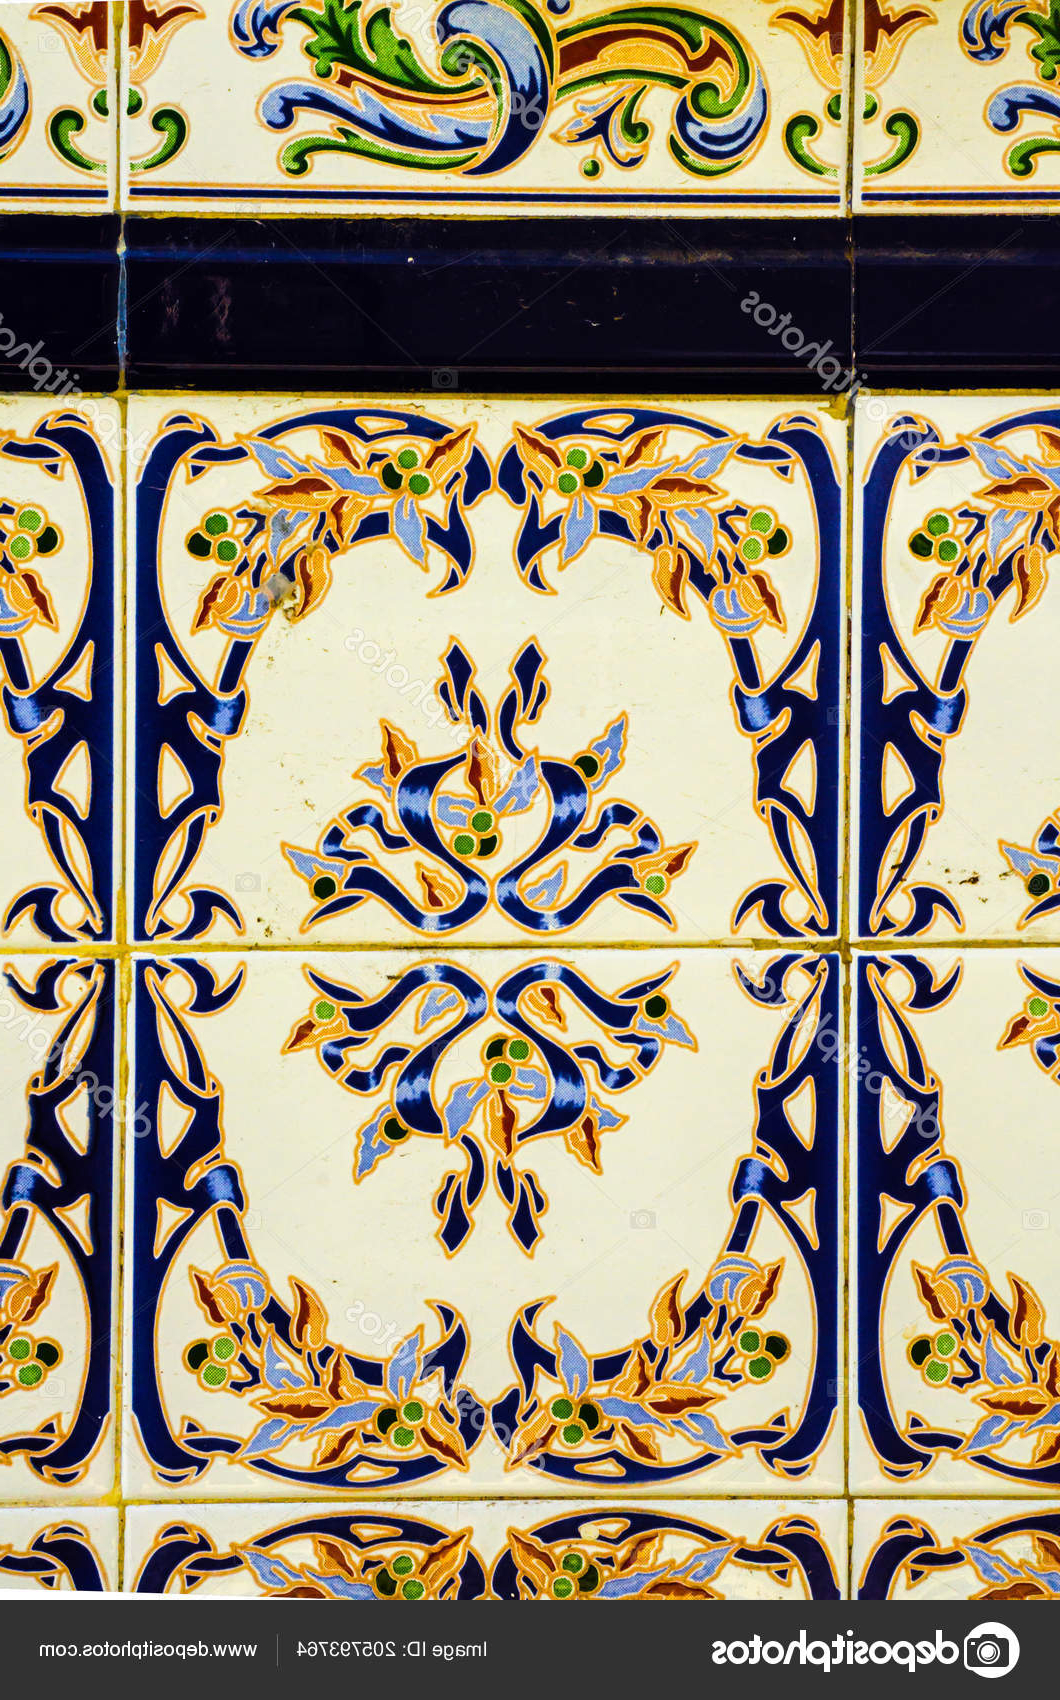 Well Known Traditional Ornamental Spanish Decorative Tiles Original Ceramic Intended For Spanish Ornamental Wall Decor (View 18 of 20)